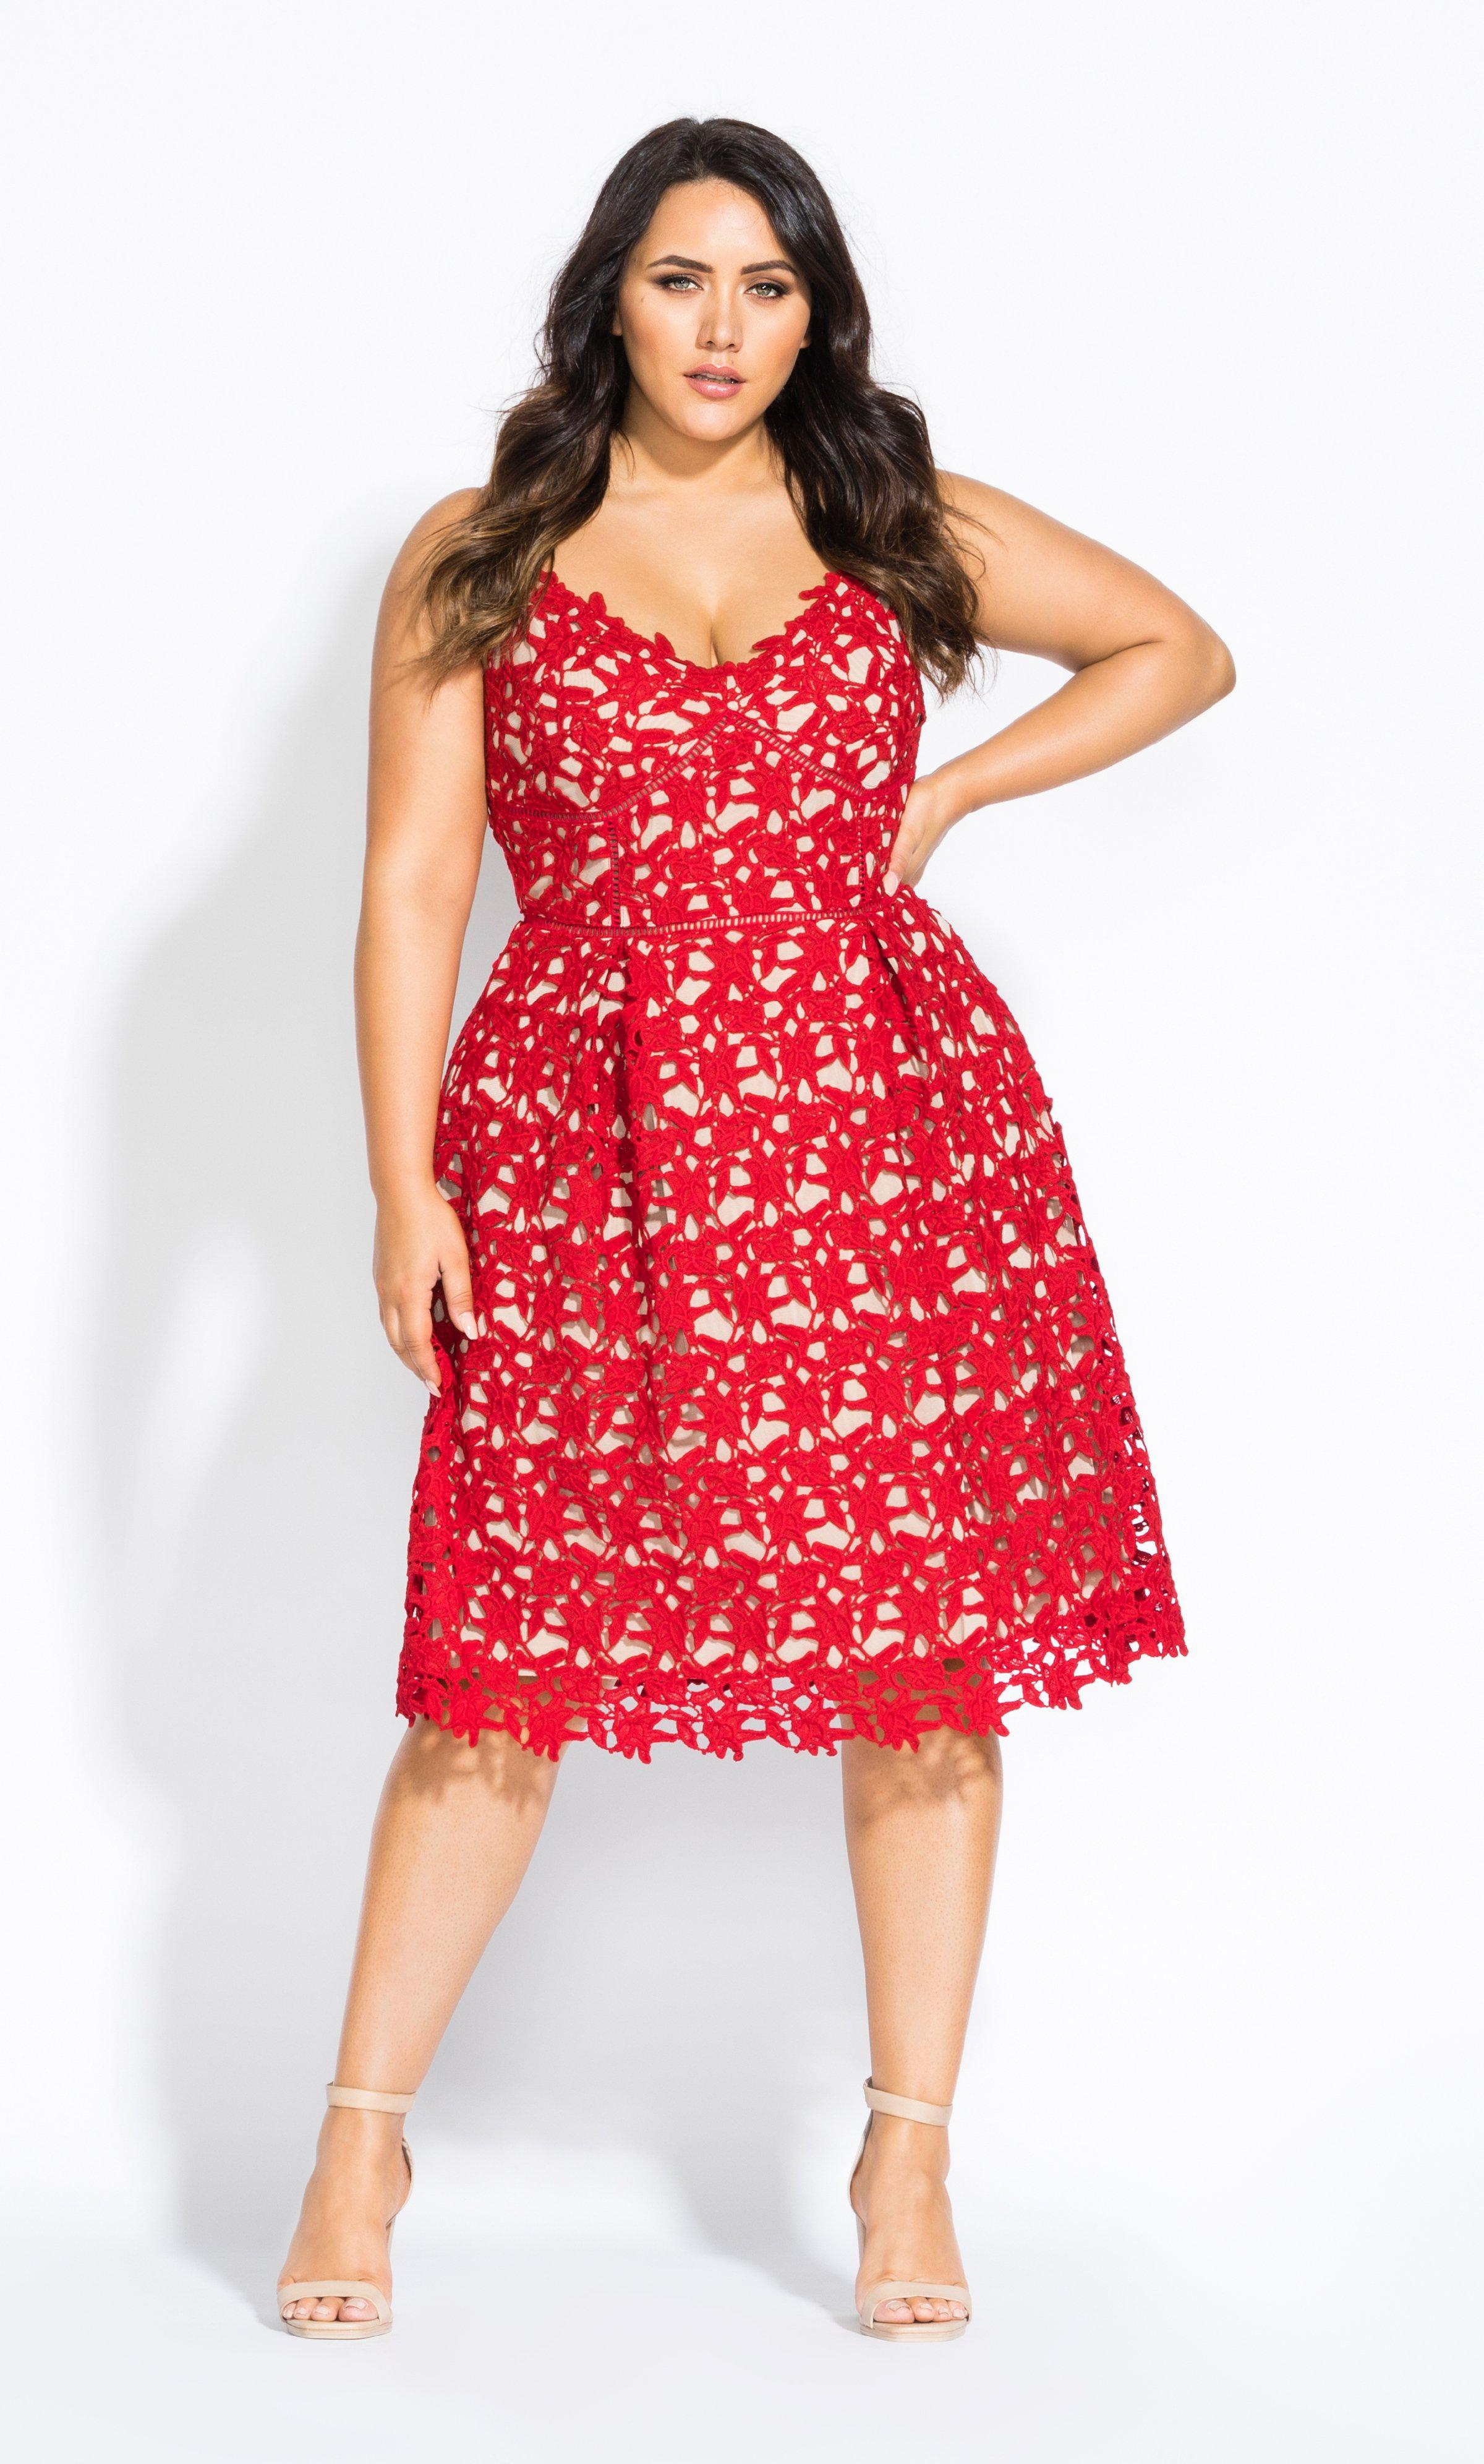 b4ade320554 Lyst - City Chic So Fancy Lace Dress in Red - Save 50%